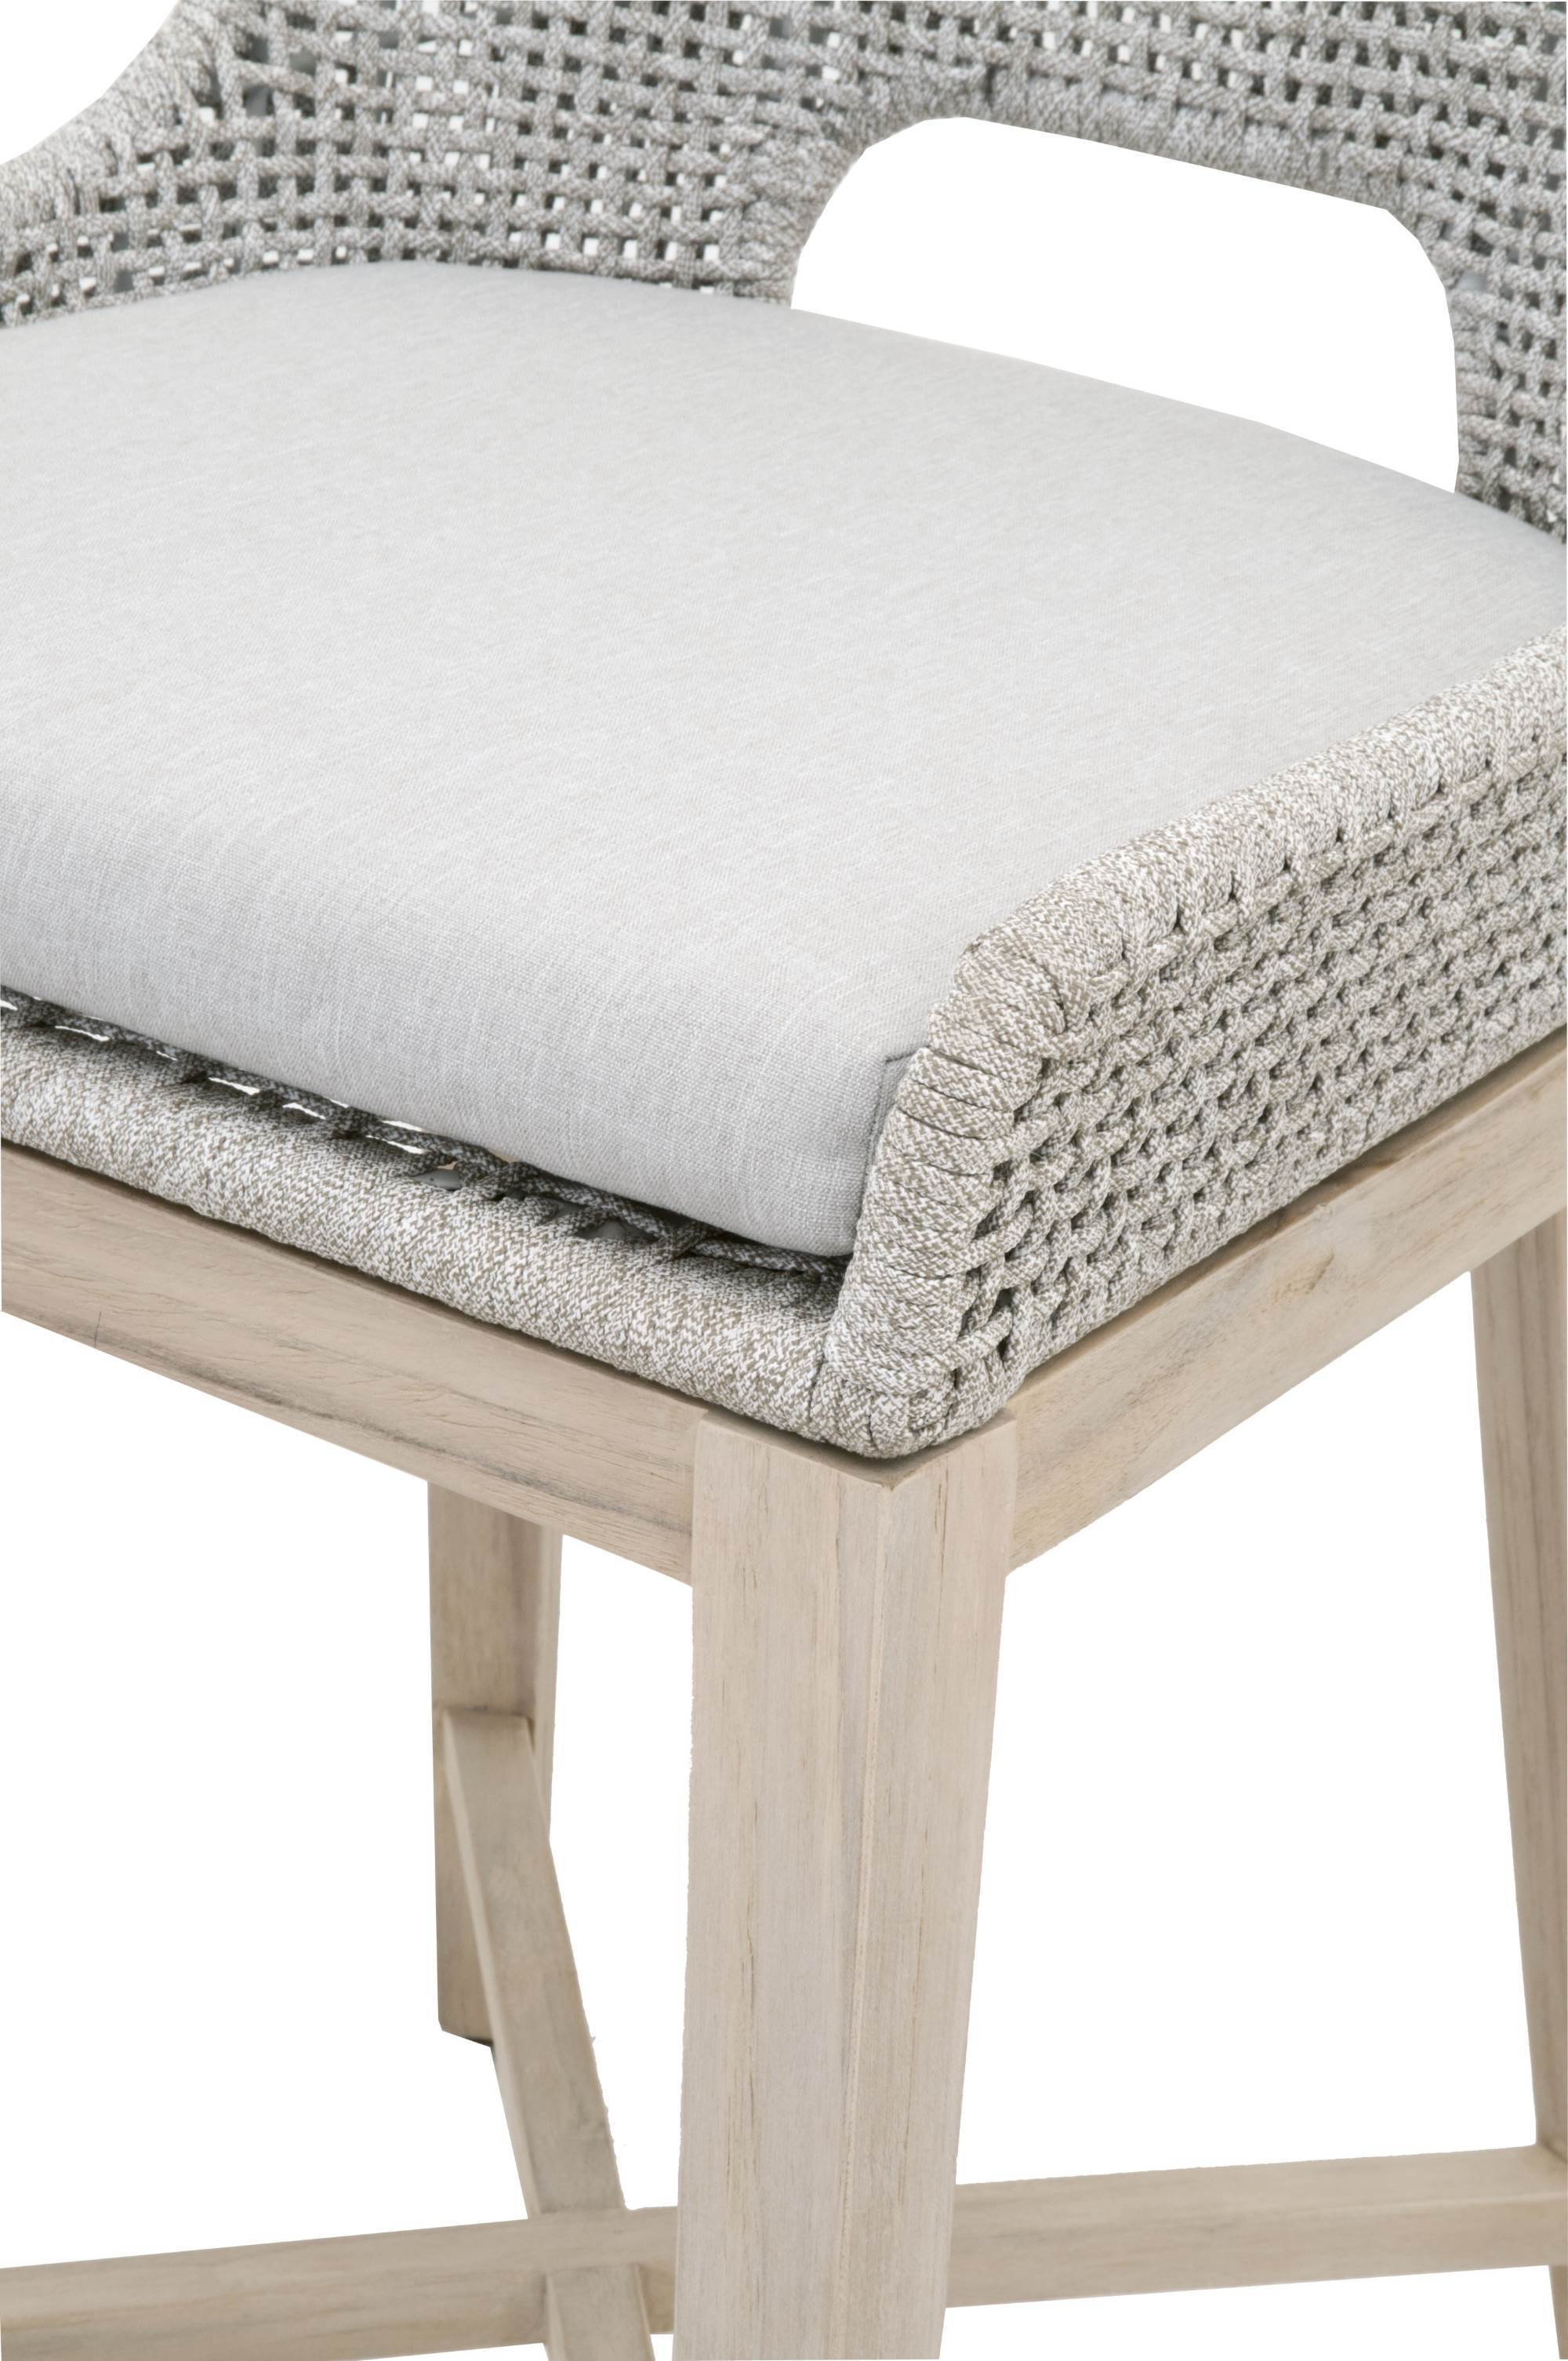 Peachy Tapestry Outdoor Counter Stool Peter Andrews Machost Co Dining Chair Design Ideas Machostcouk